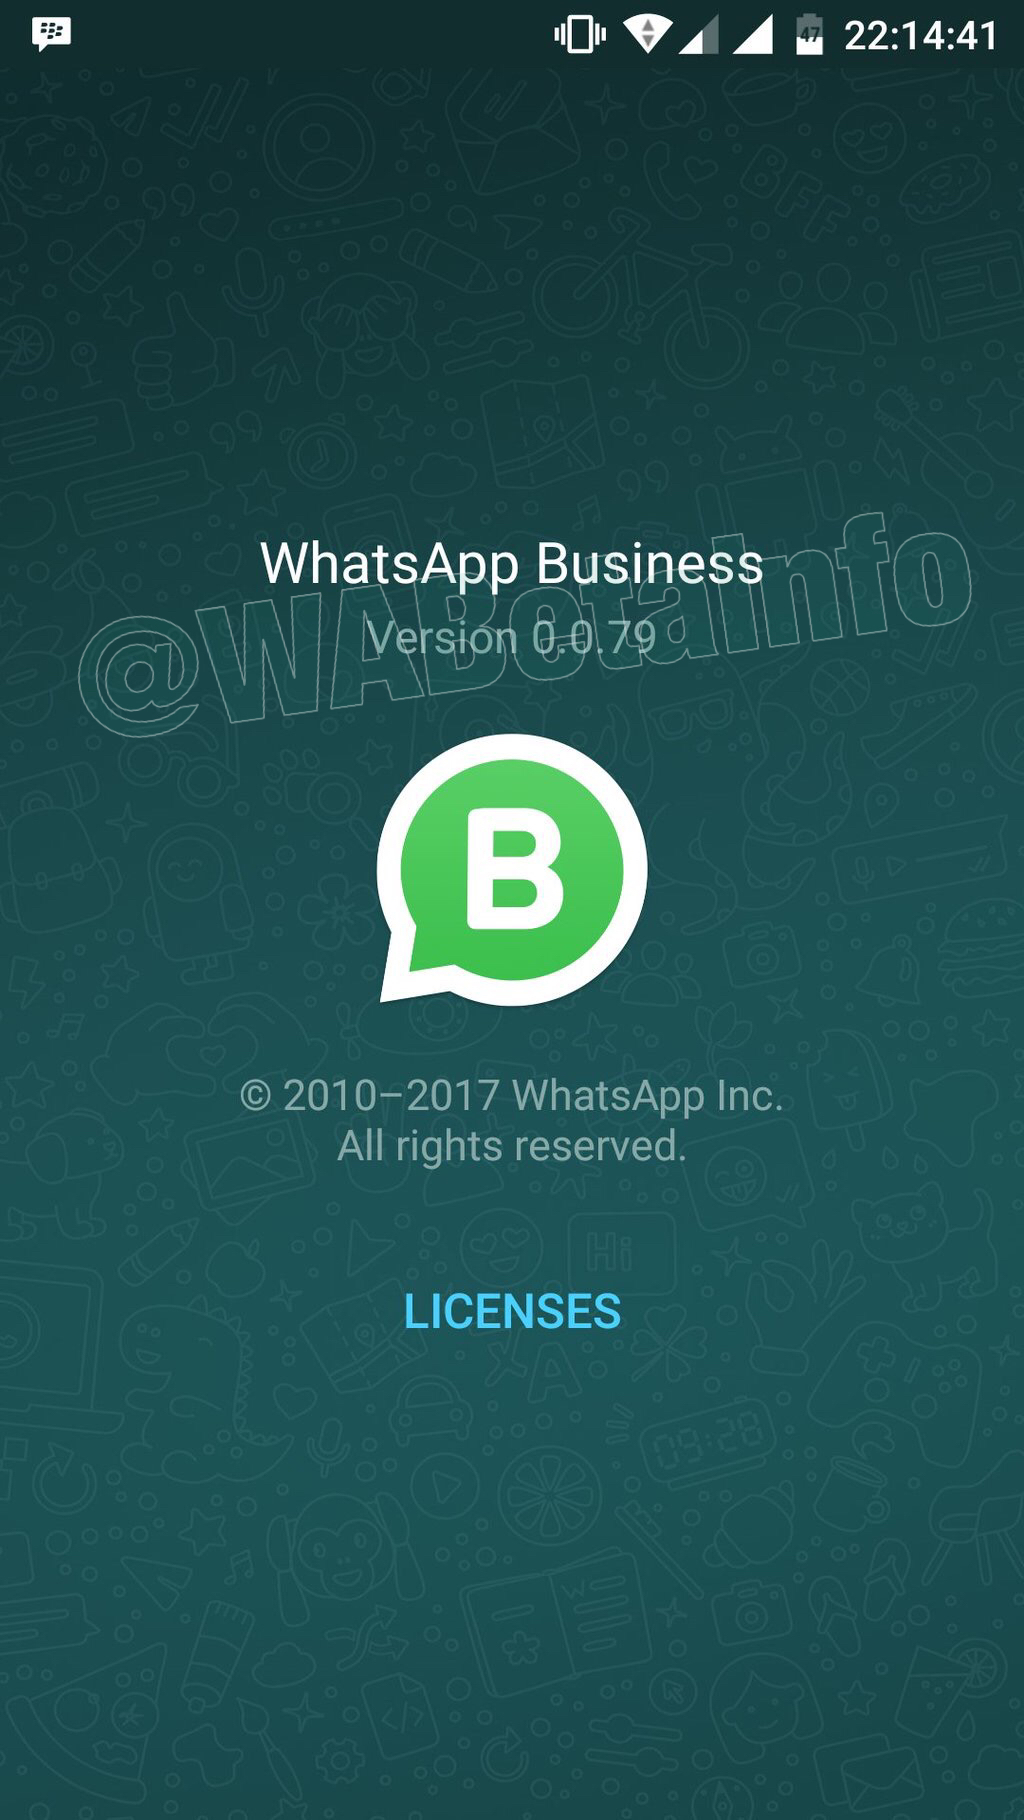 whatsapp android beta version